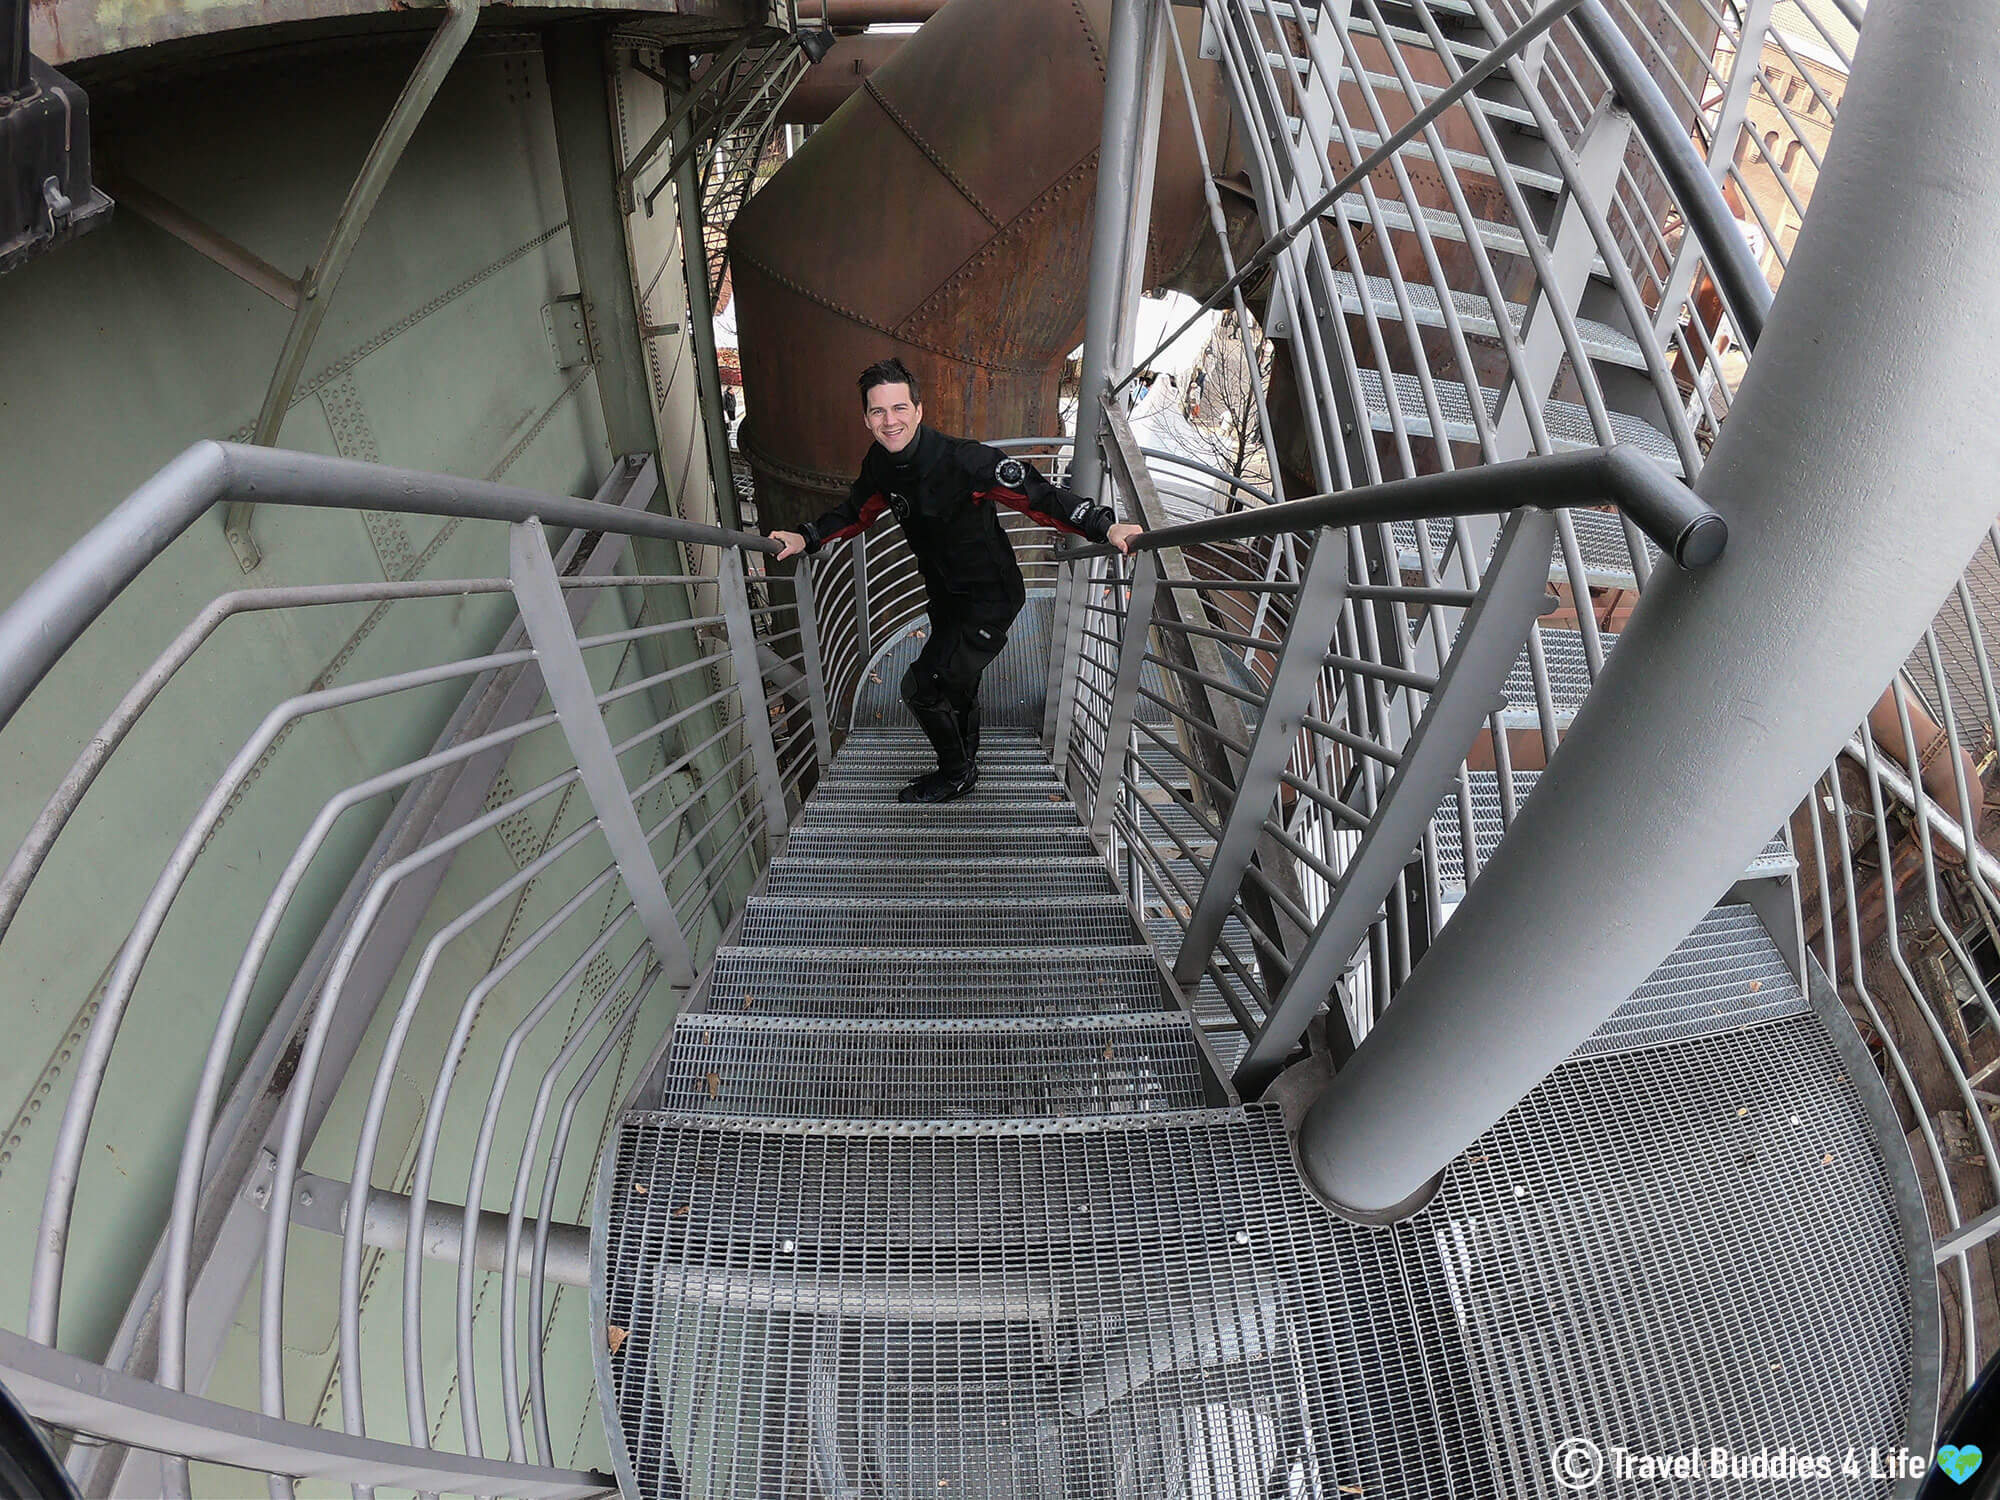 Joey Climbing The Stairs To The Gas O Meter In His Drysuit, Germany, Europe